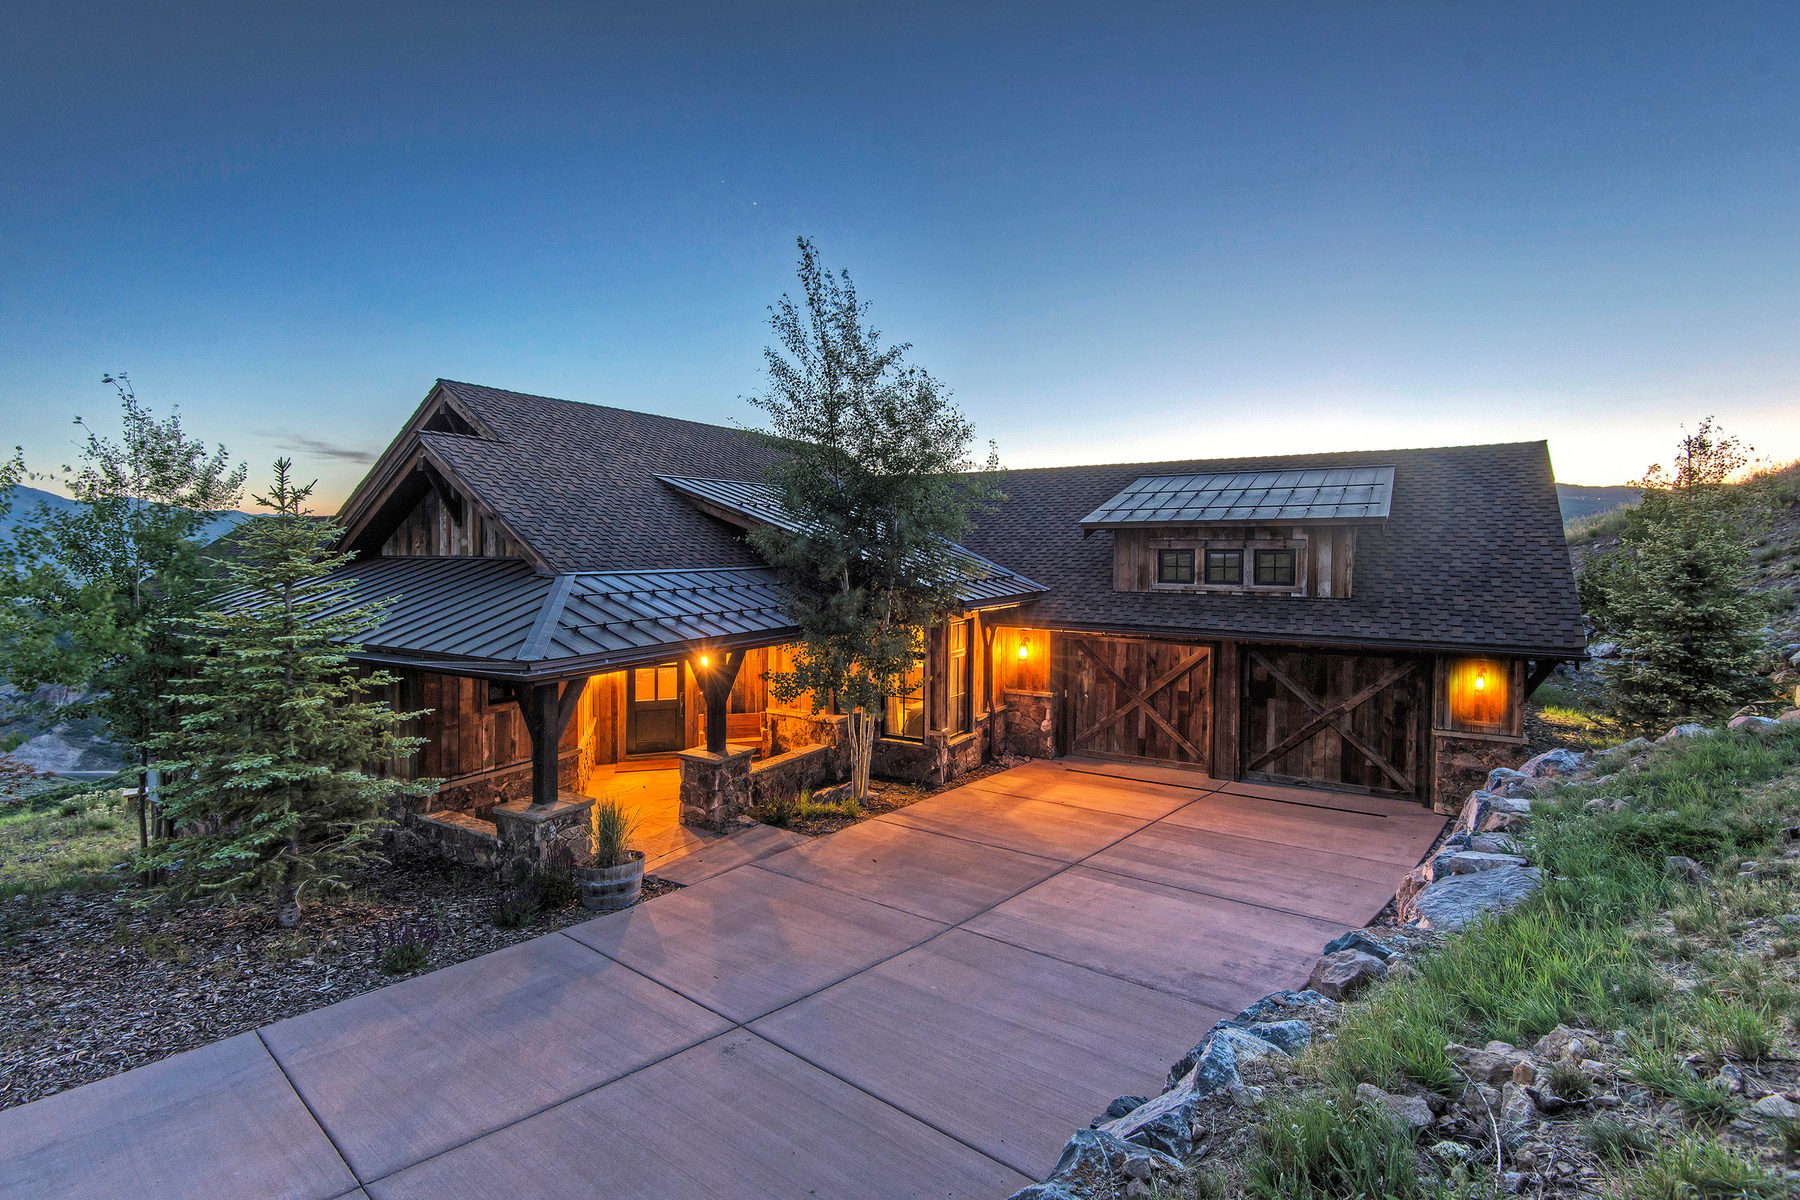 Maison unifamiliale pour l Vente à Biggest View Cabin in Promontory 9243 Alice Ct Park City, Utah 84098 États-Unis